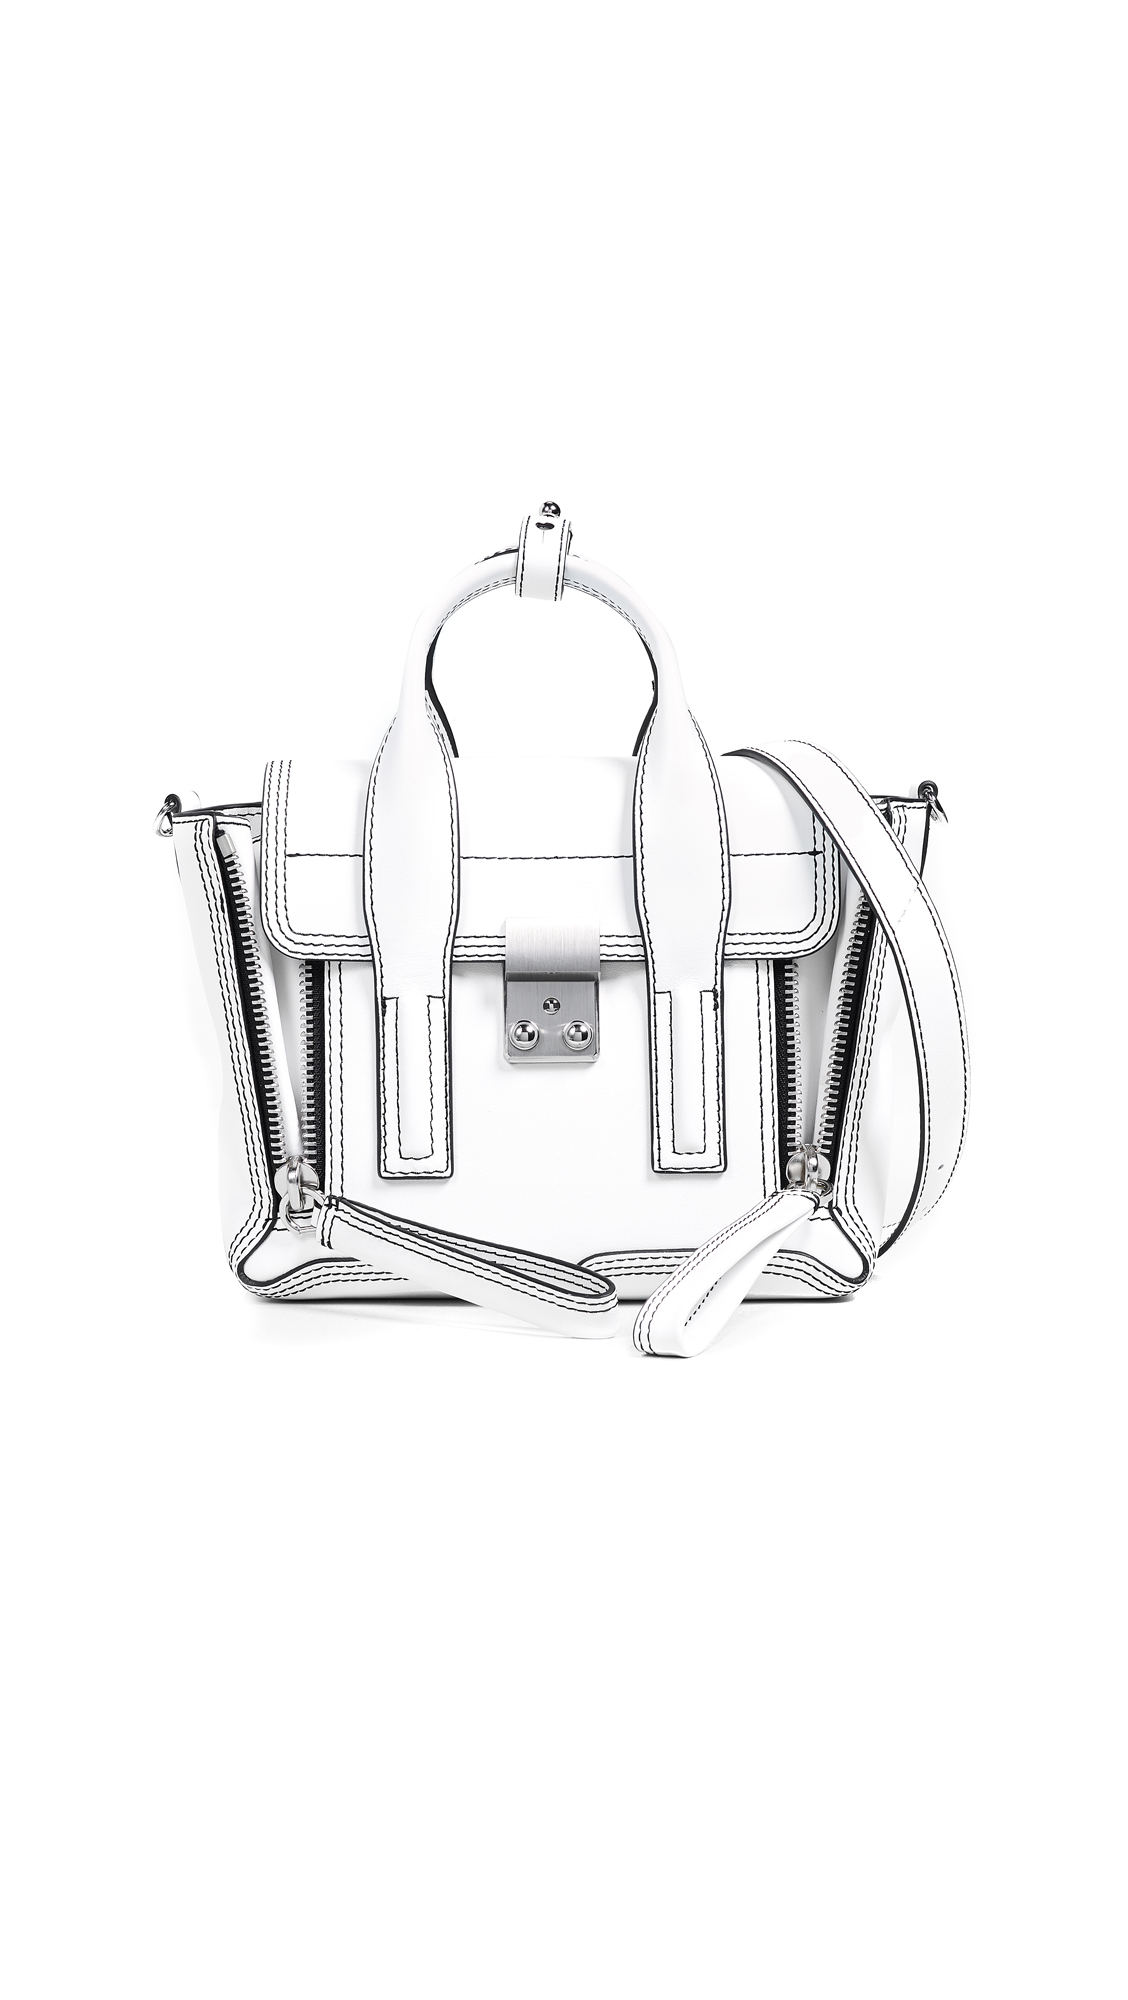 3.1 Phillip Lim Pashli Mini Satchel - White